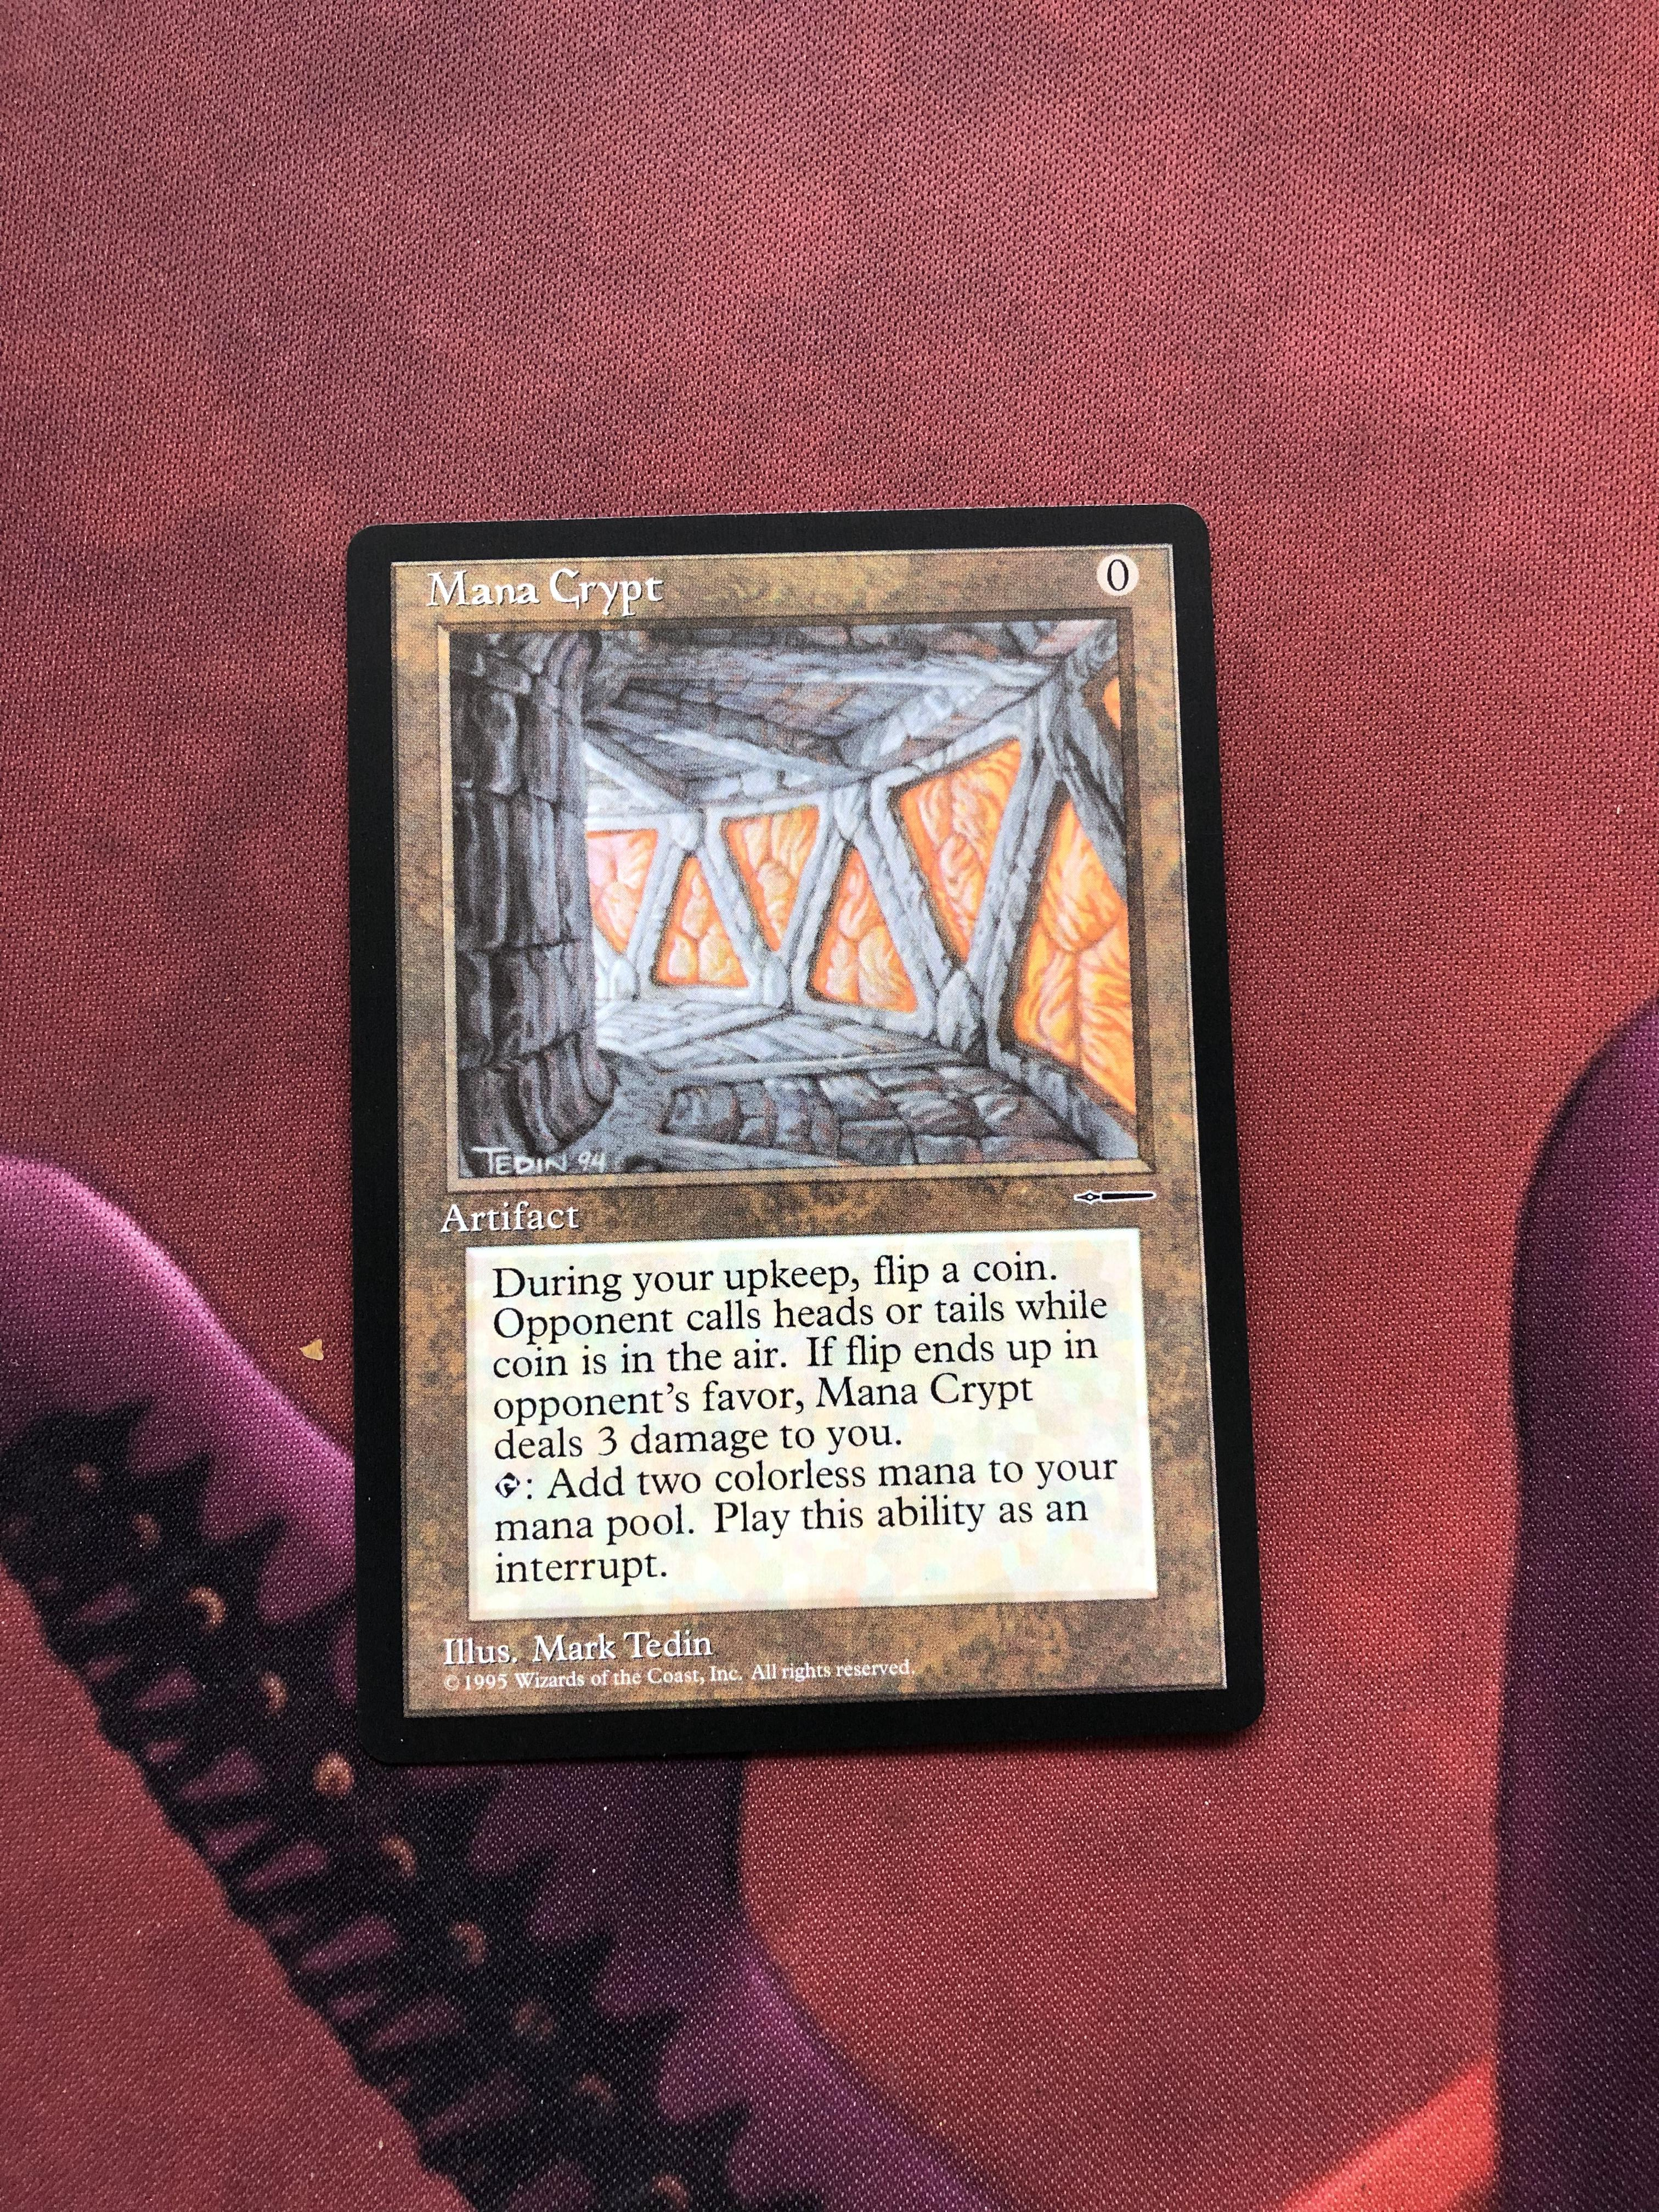 Mana Crypt HarperPrism Book Promos Magician ProxyKing 8.0 VIP The Proxy Cards To Gathering Every Single Mg Card.